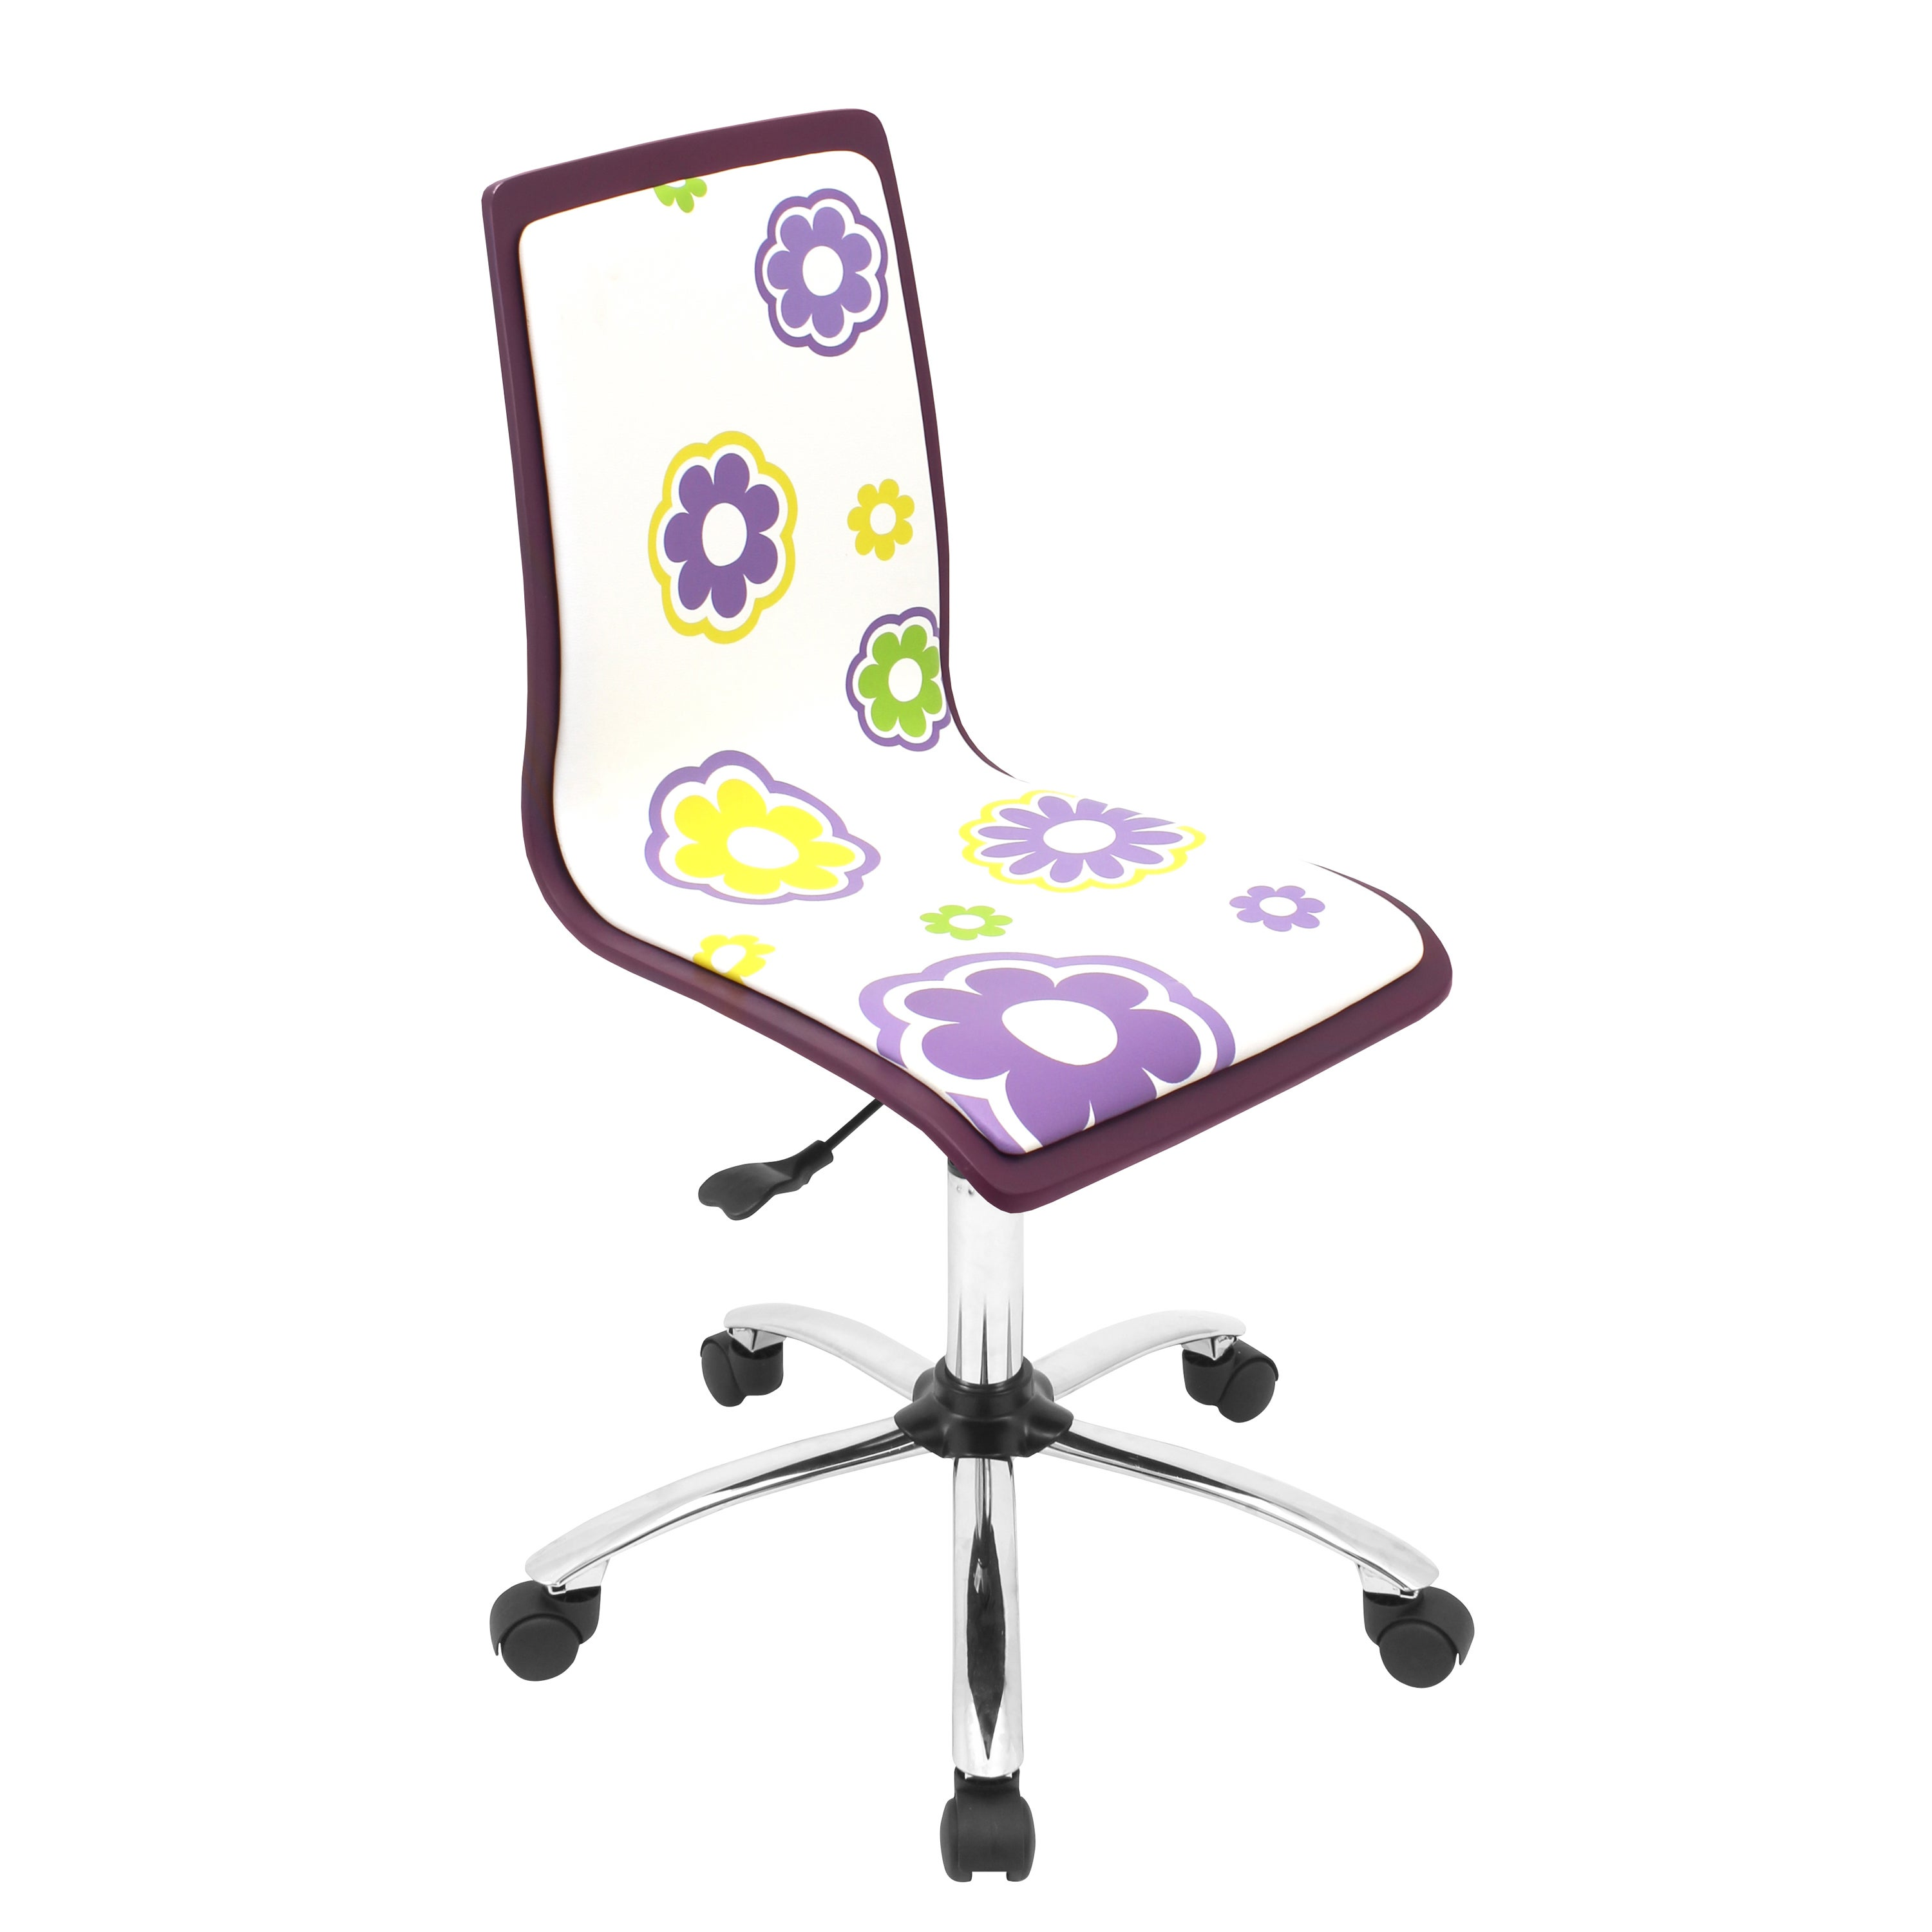 Printed Daisy Purple Computer Chair - 14071455 - Overstock.com